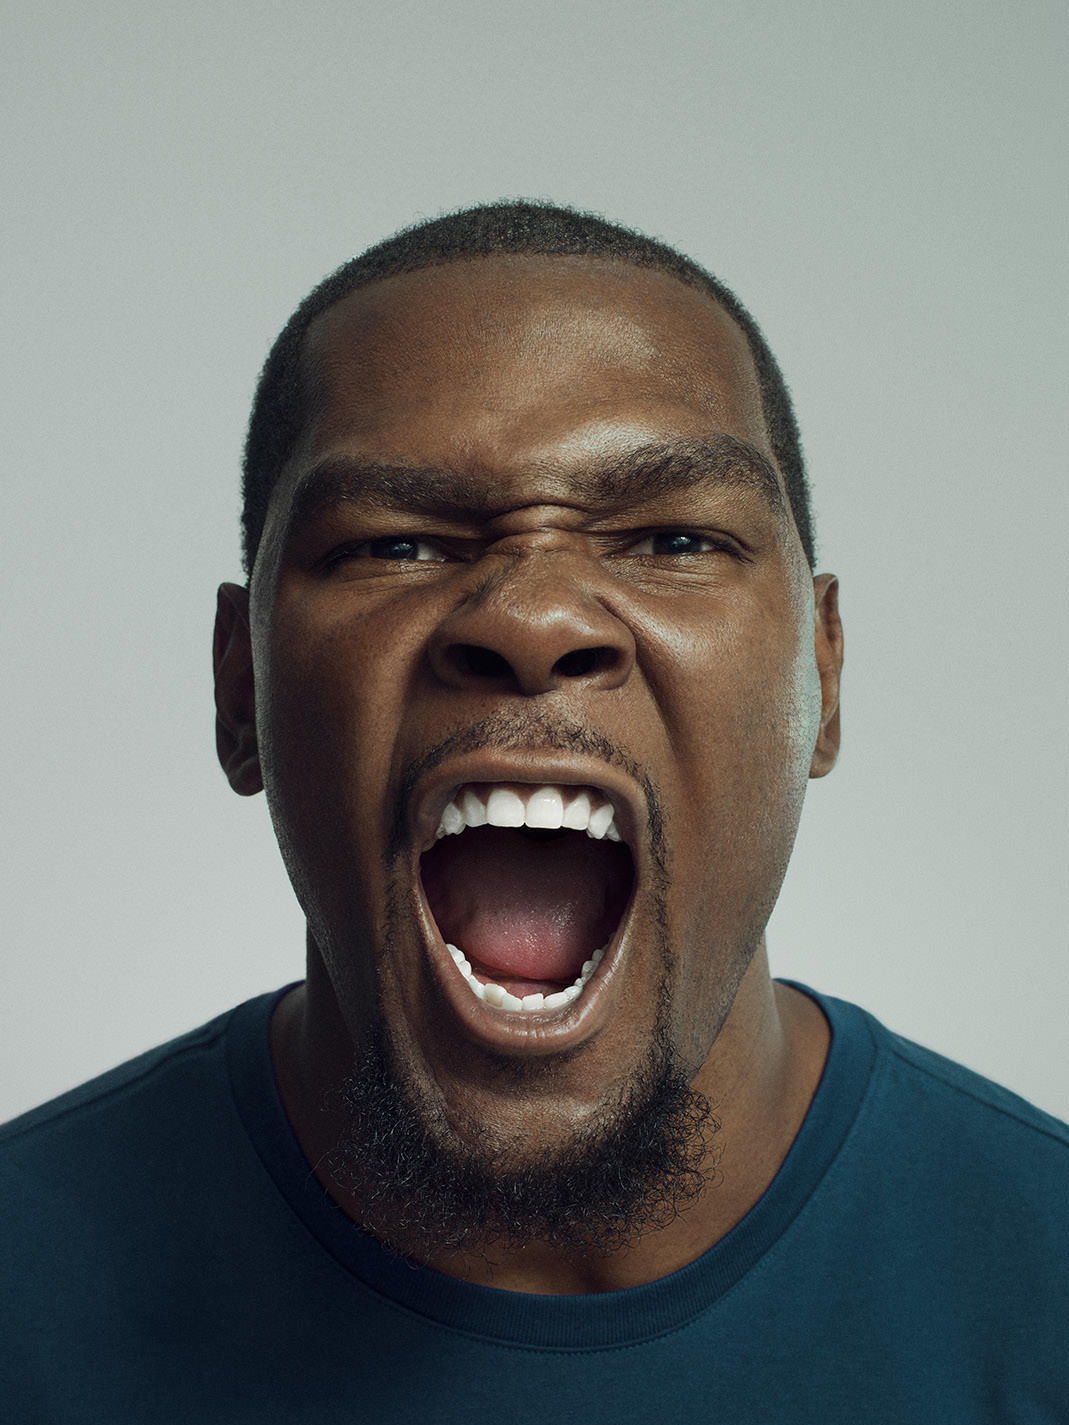 Kevin Durant portrait by photographer John Keatley